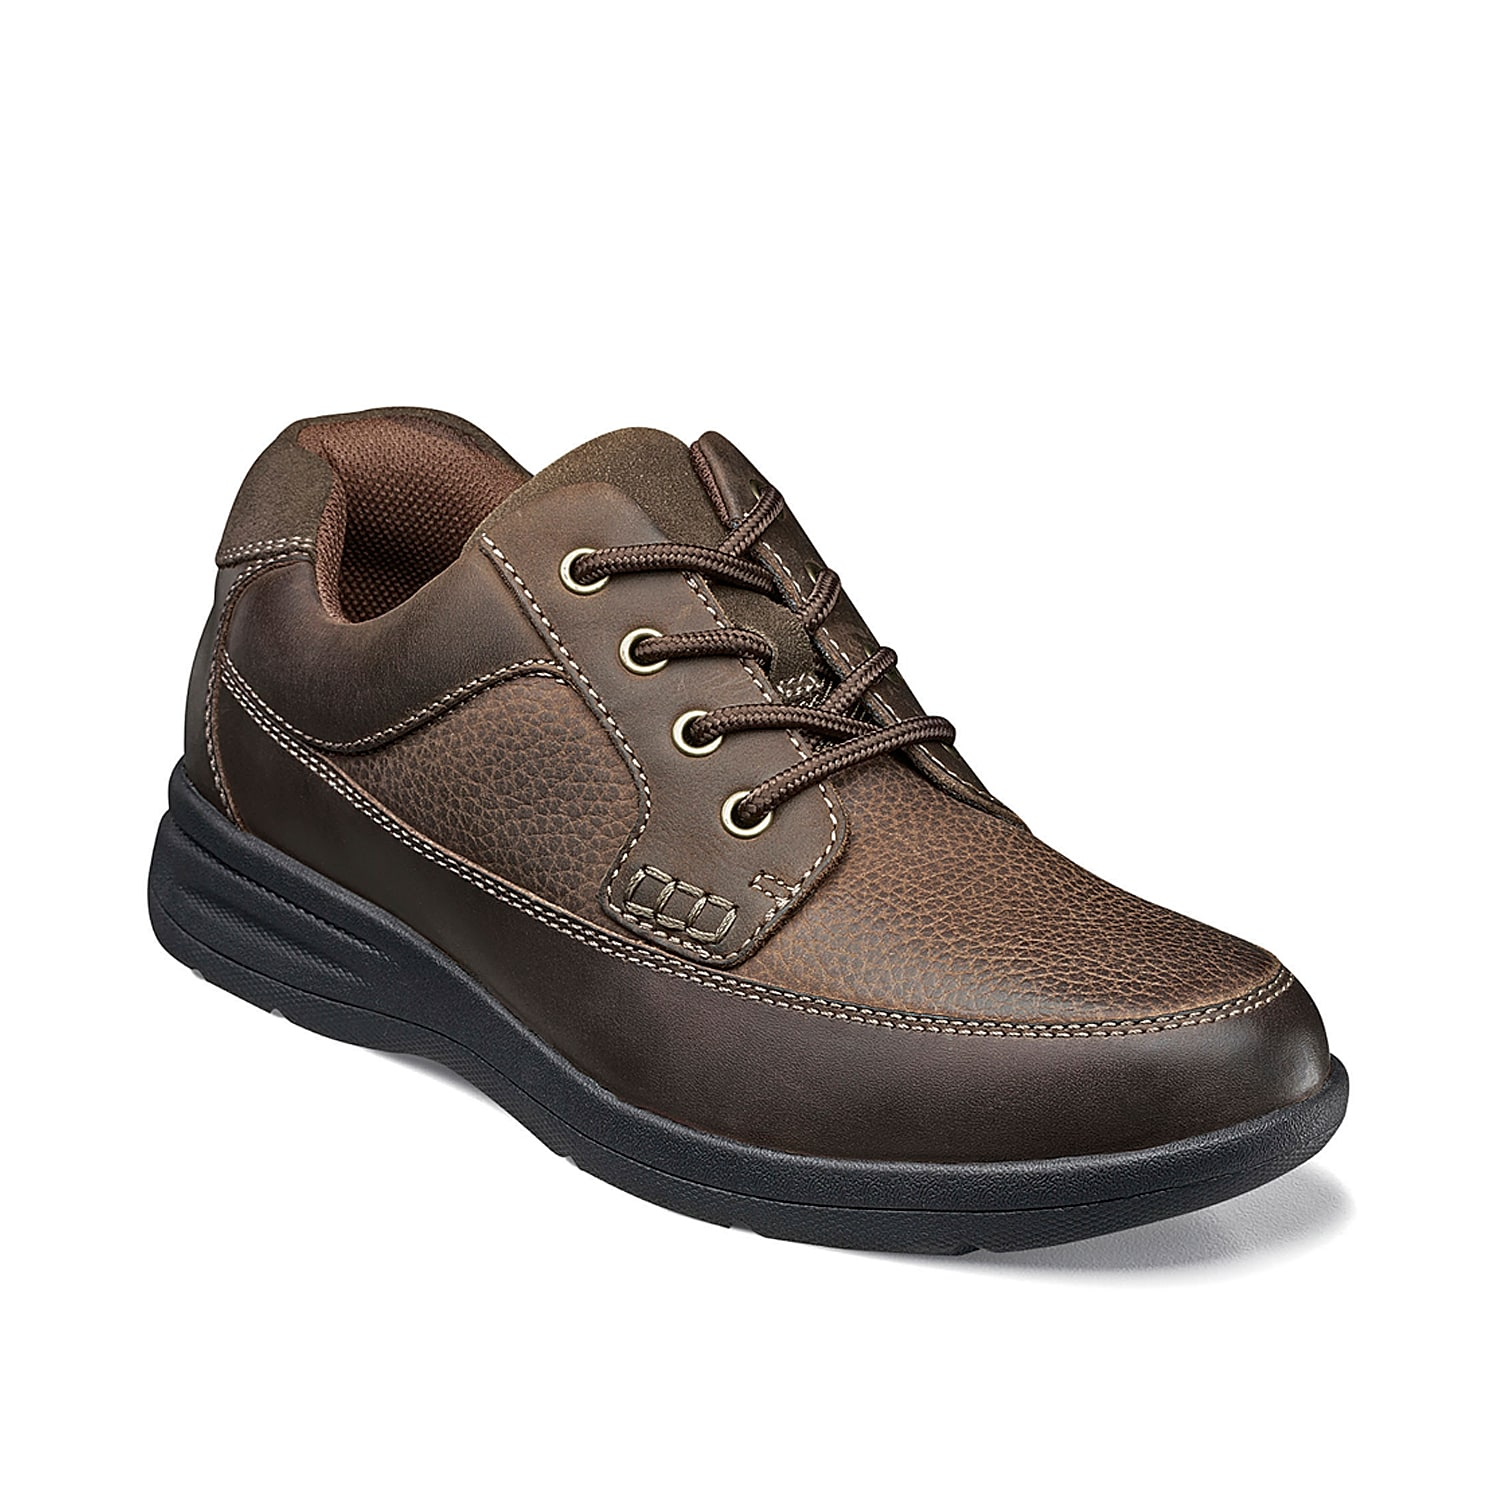 Step into the Cam oxford from Nunn Bush for an instant comfort boost. These leather lace-ups feature an anatomically-designed gel pad that absorbs impact and plenty of cushioning for daylong support.